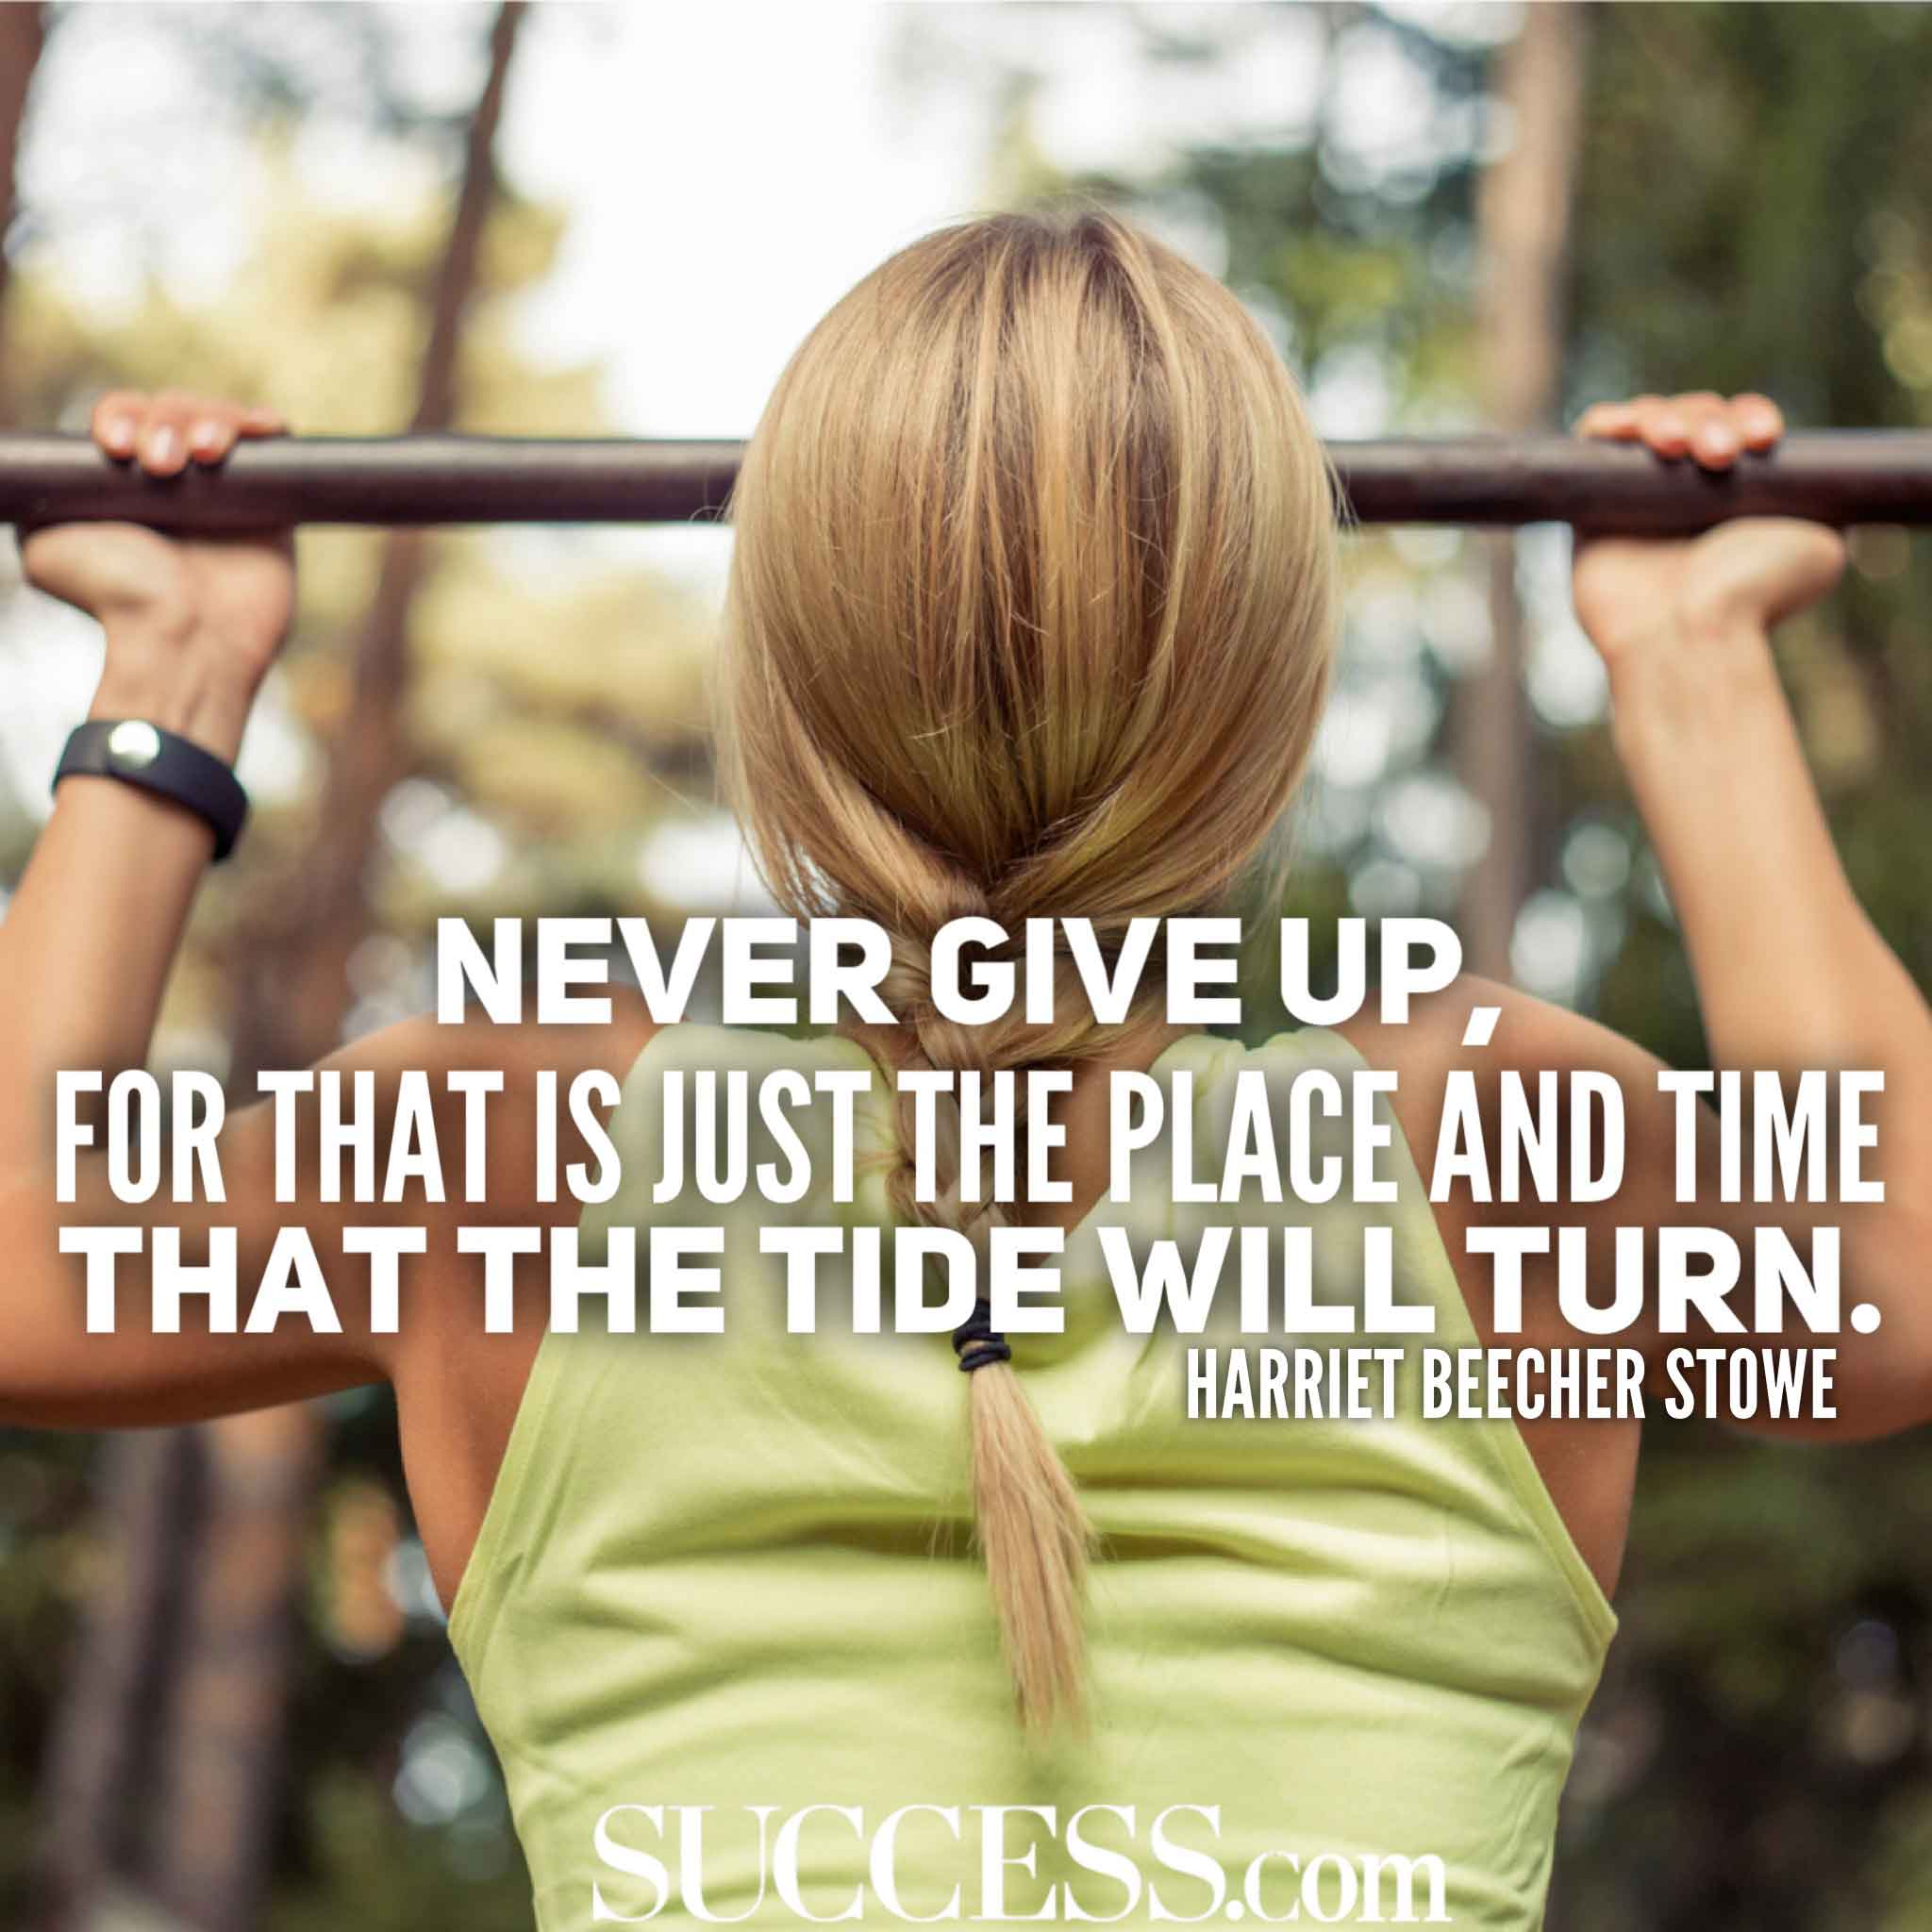 Inspirational Quotes About Never Giving Up